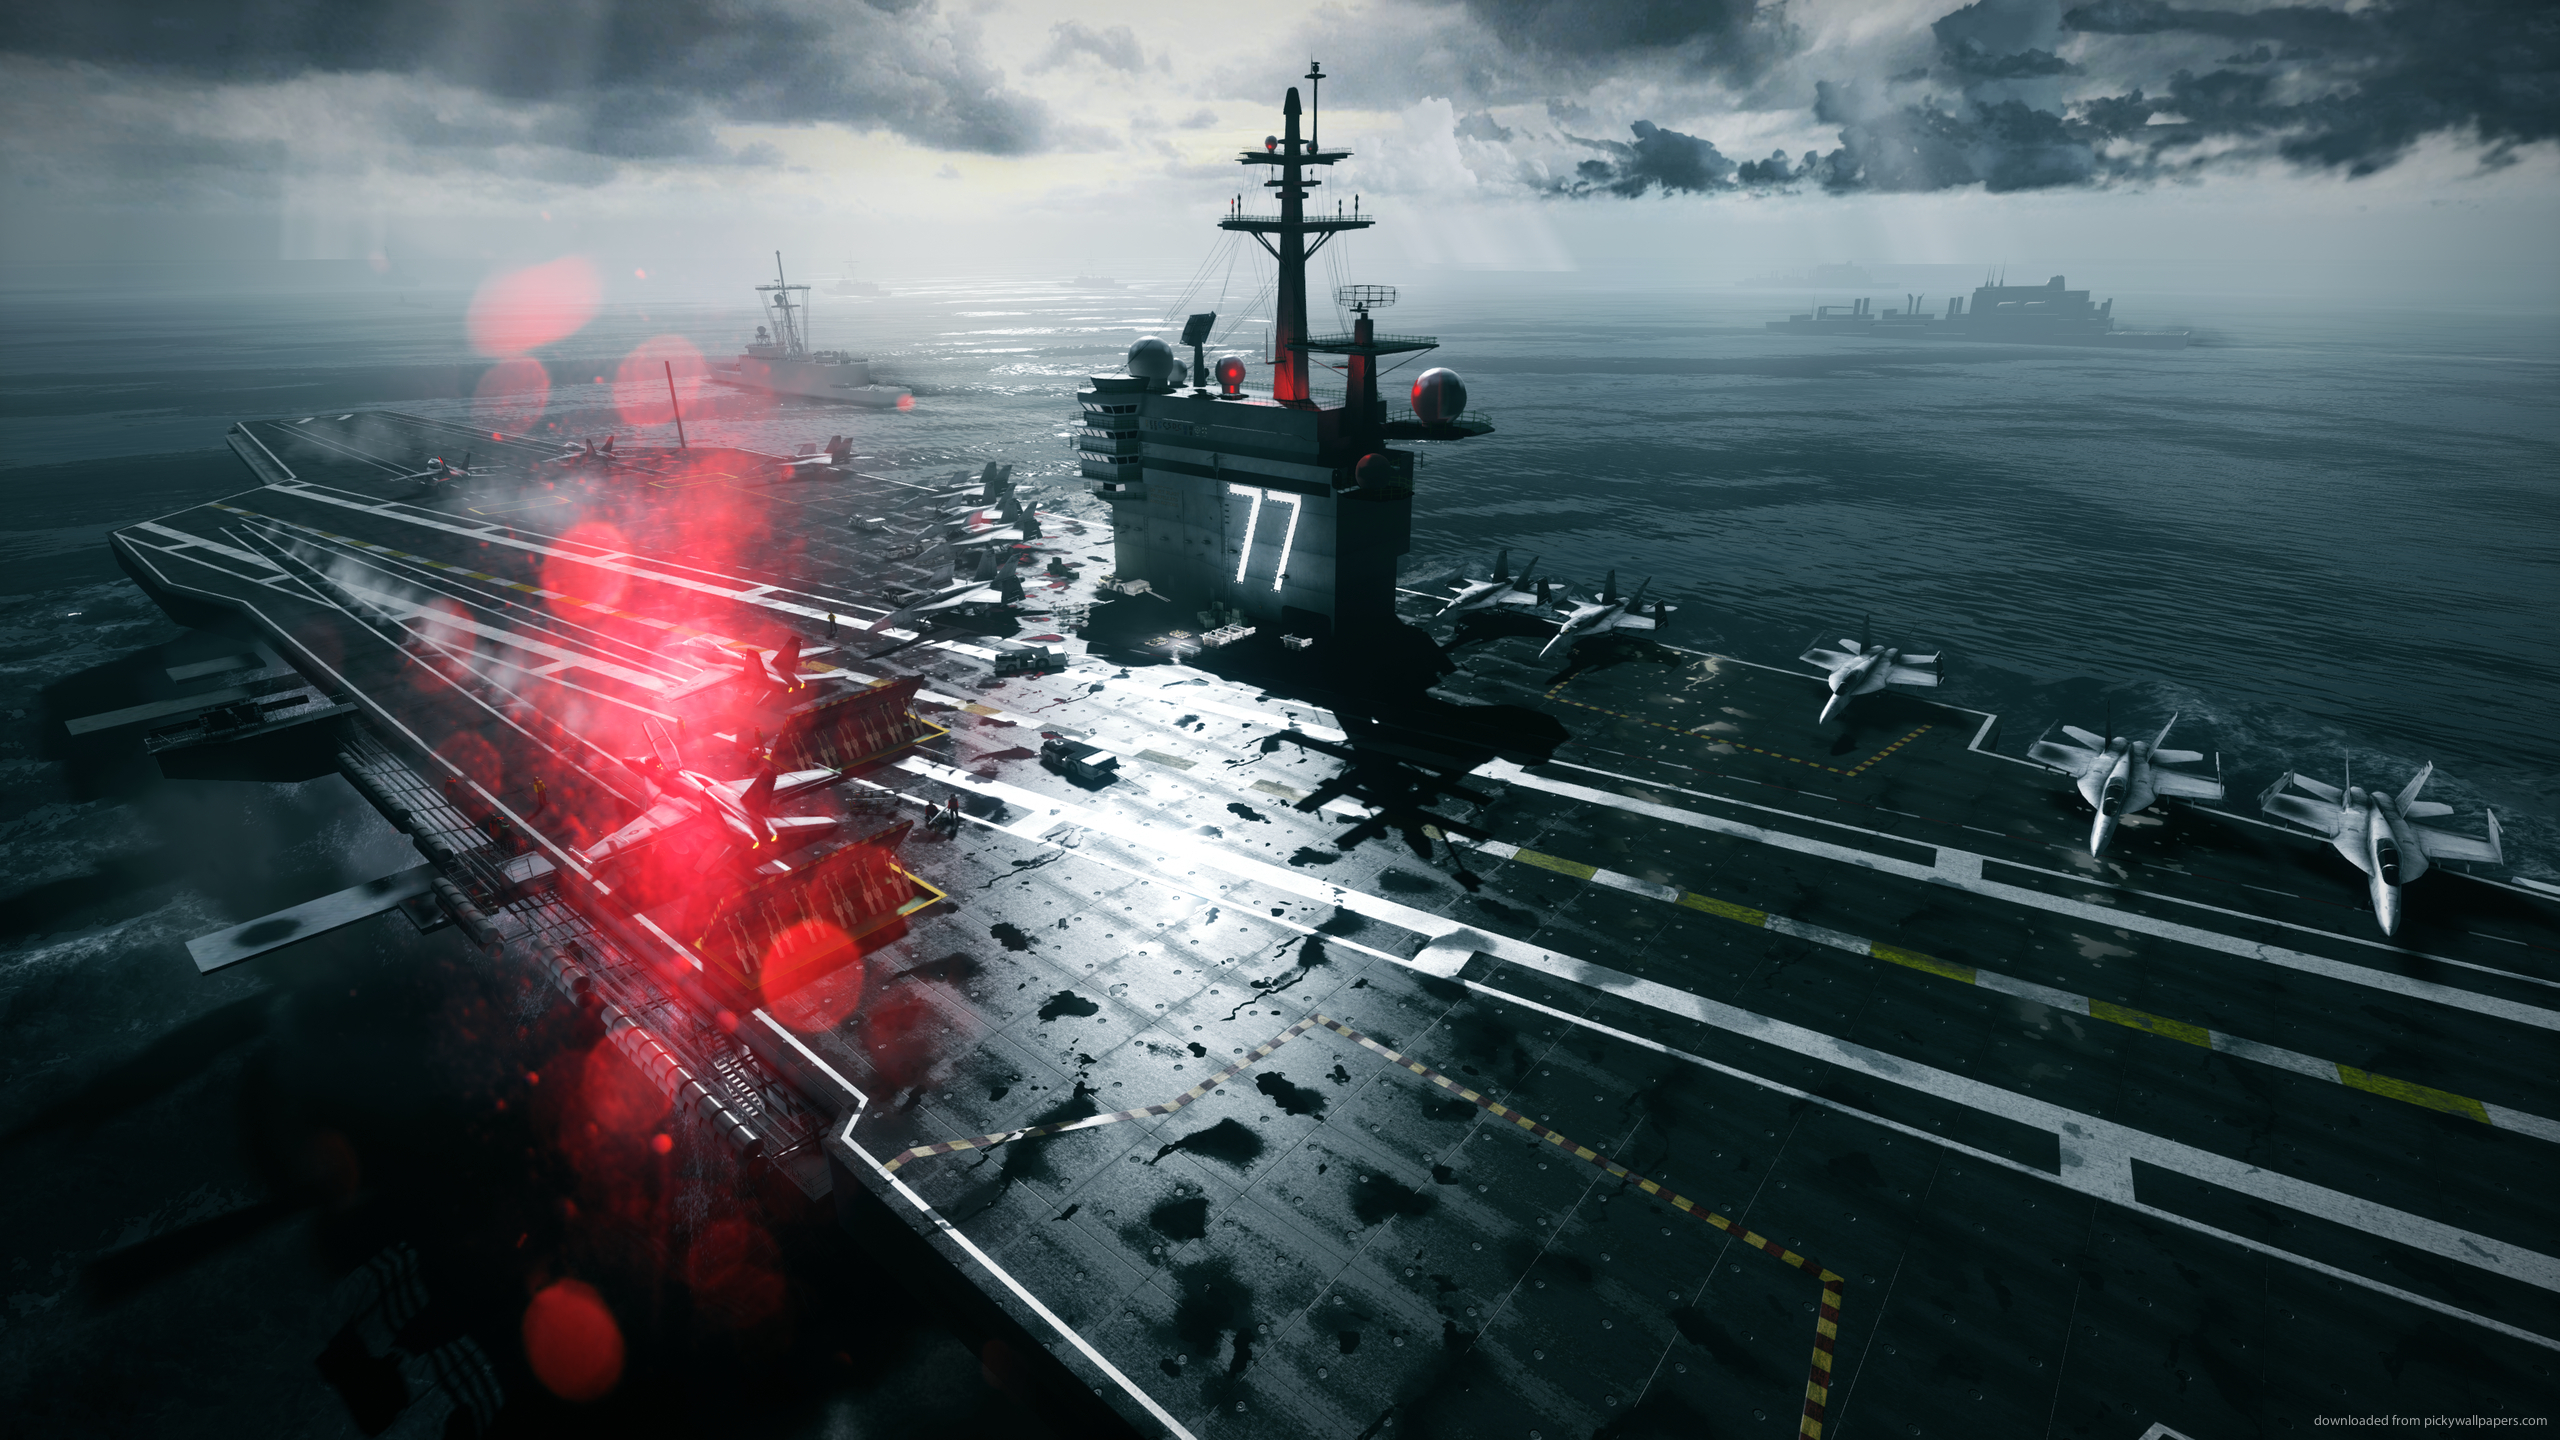 battlefield carrier twitter background wallpaper games 2560x1440 2560x1440